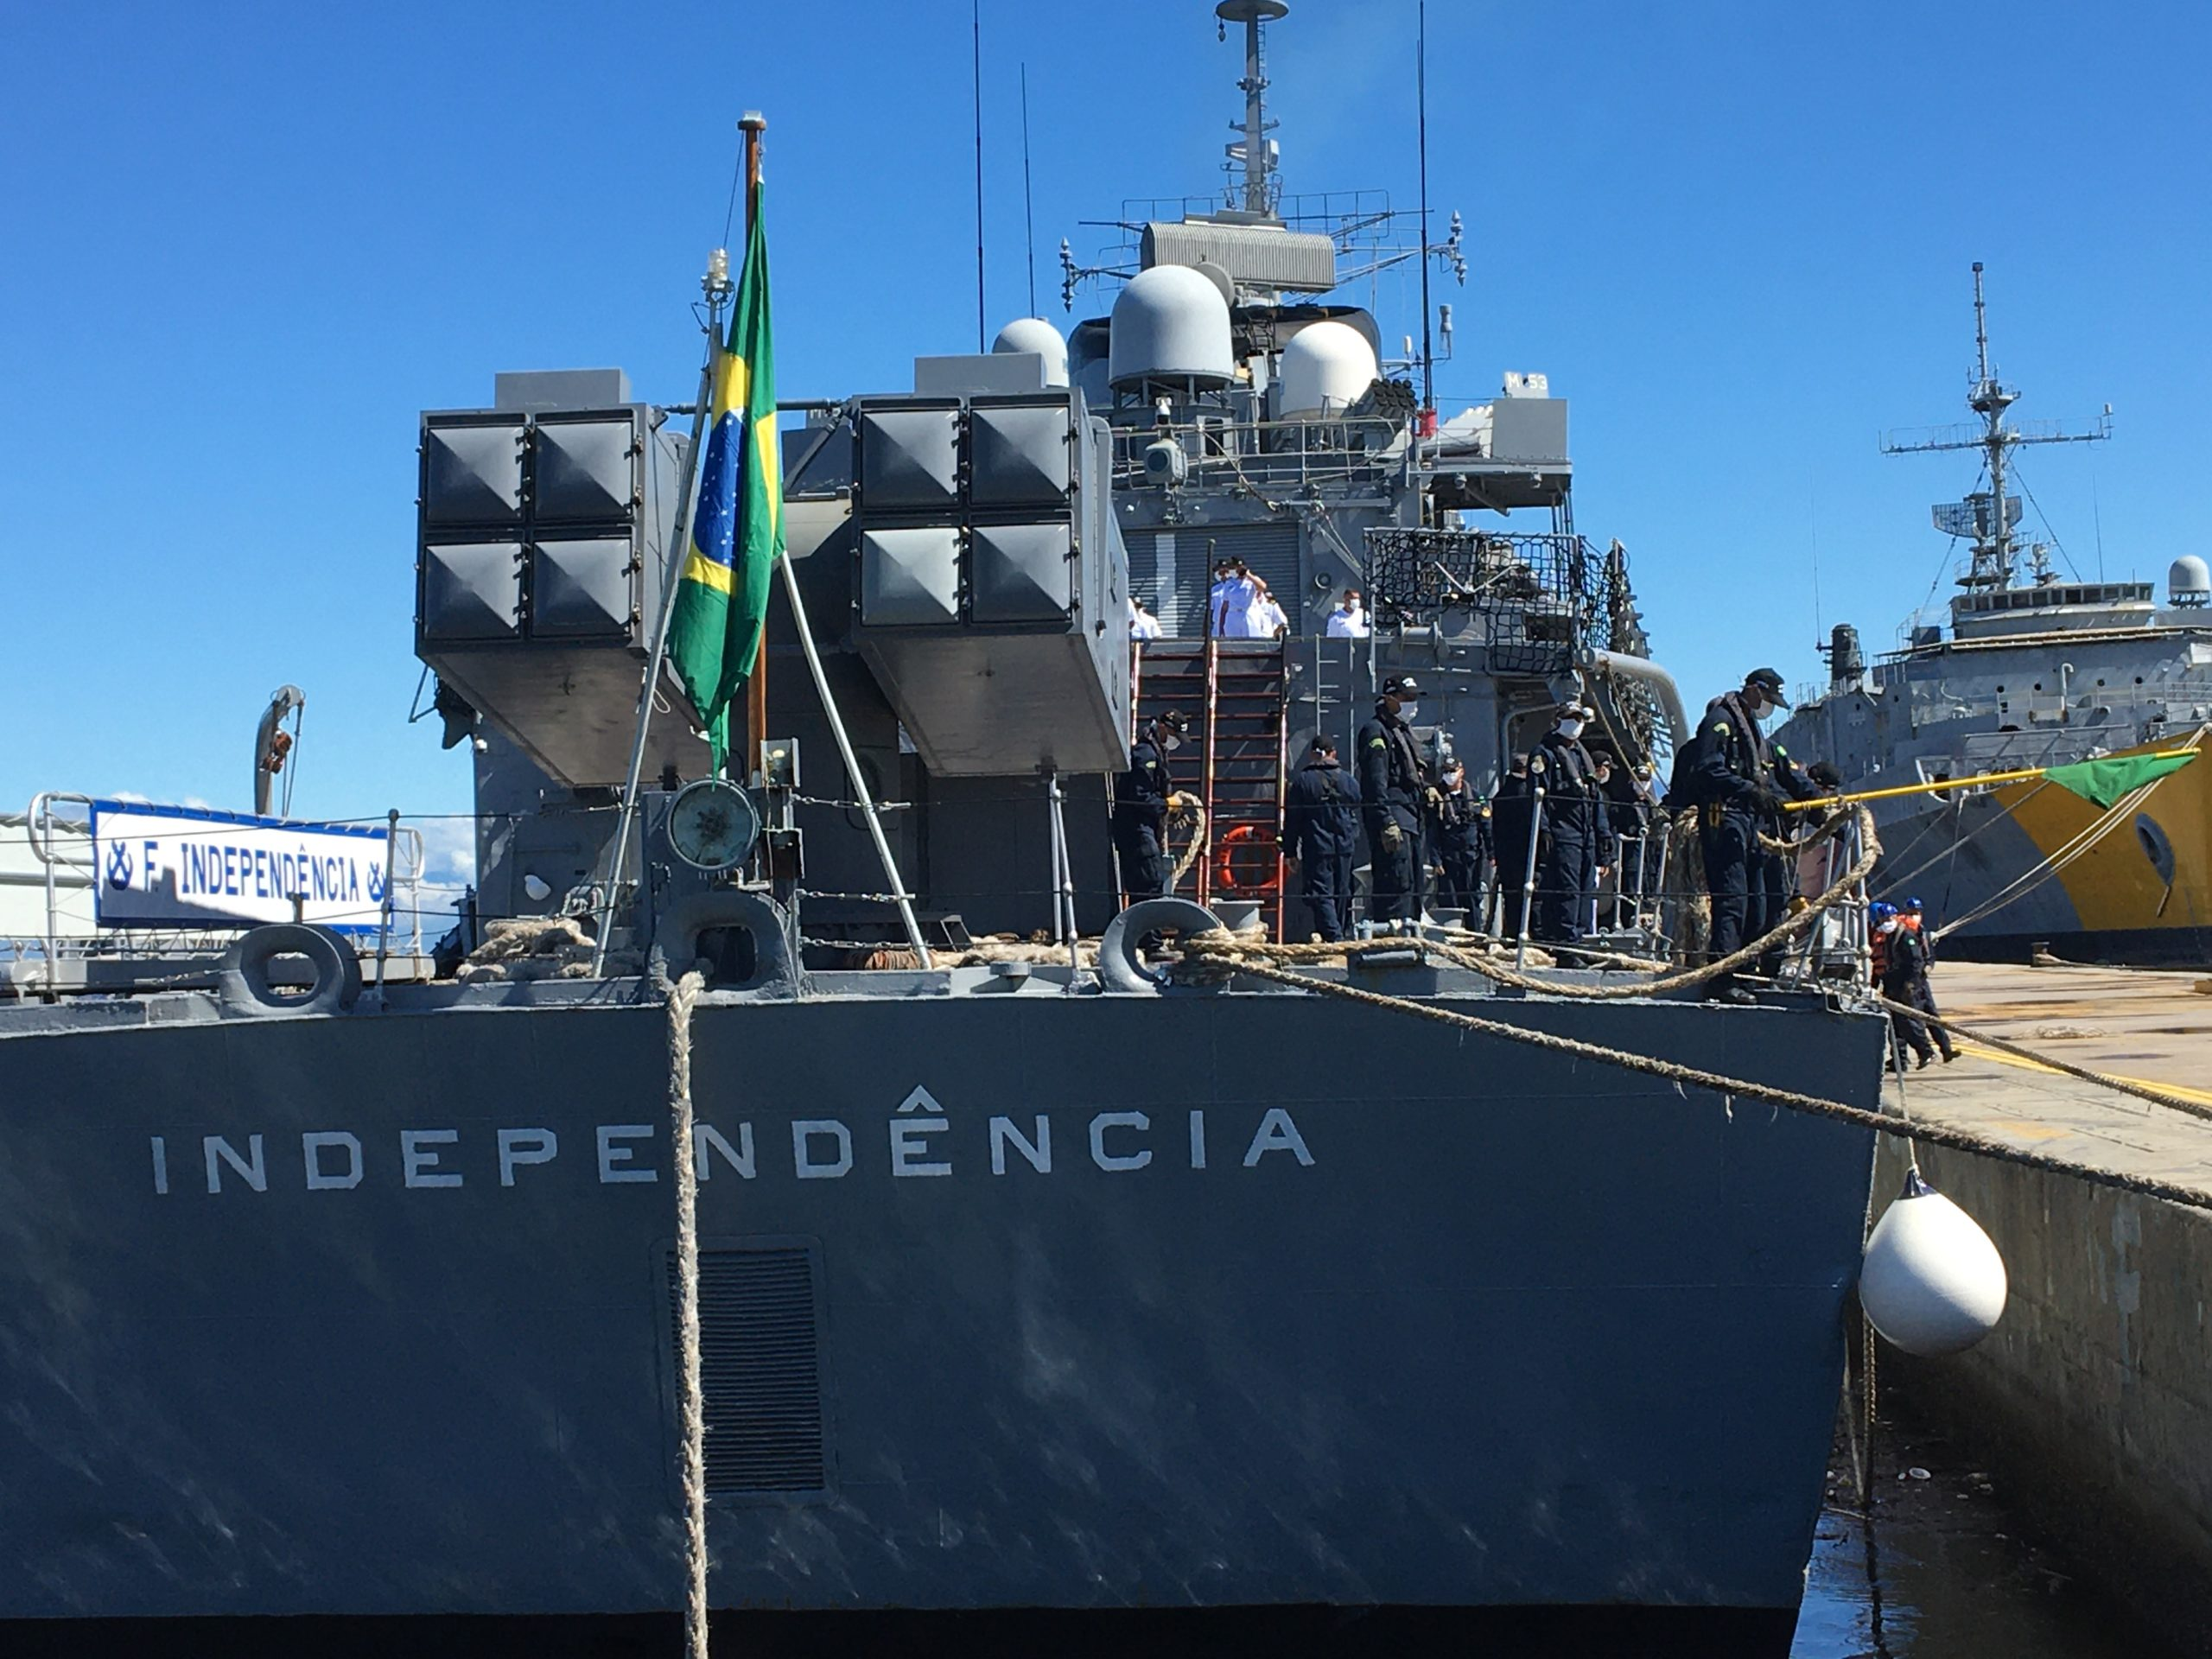 Last Brazilian Frigate Returns Home Following a 9 Year Peacekeeping Mission in Lebanon